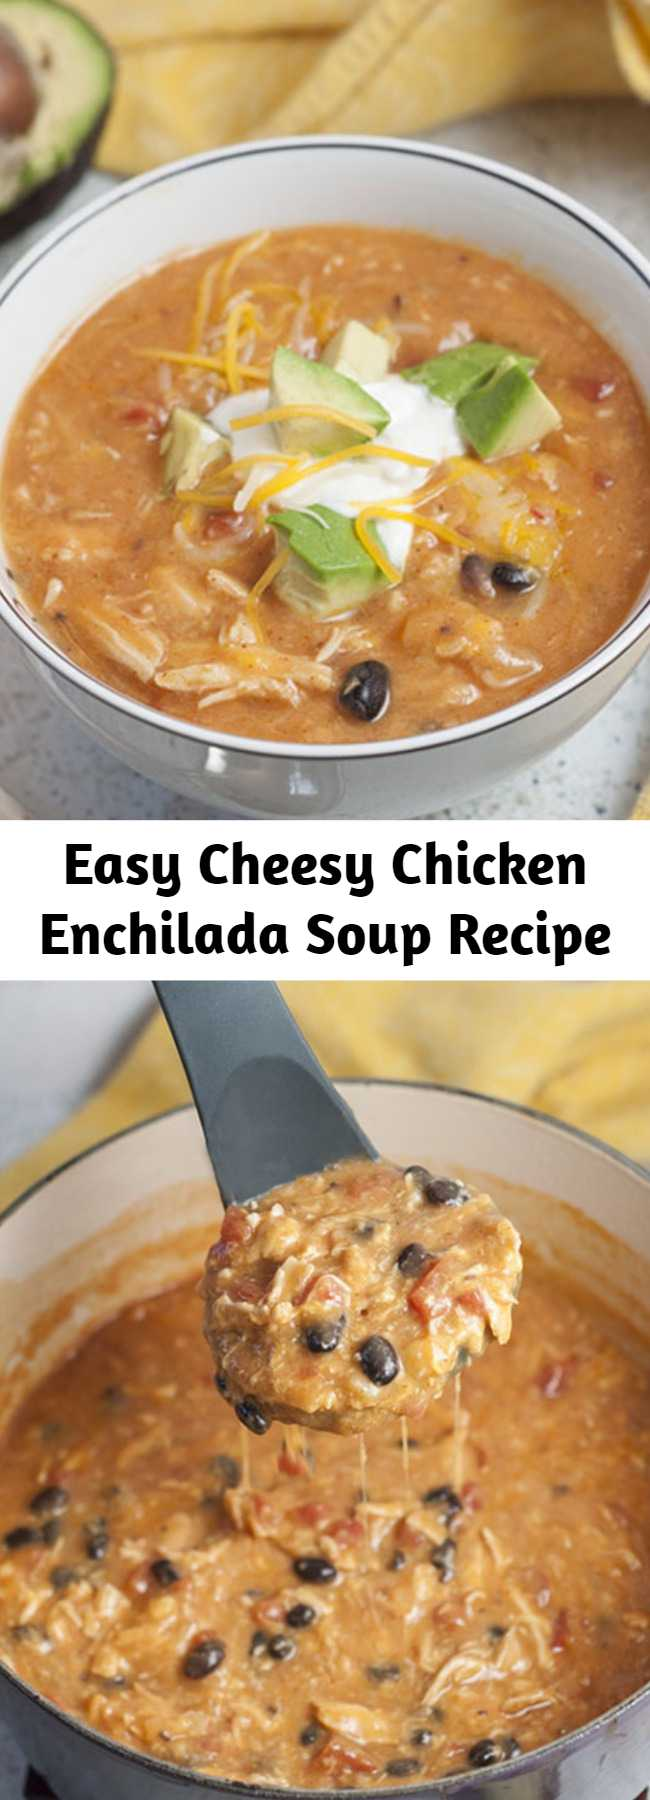 Easy Cheesy Chicken Enchilada Soup Recipe - Flavorful and filling 20 Minute Cheesy Chicken Enchilada Soup recipe is super easy to cook up and full of the BEST flavors!